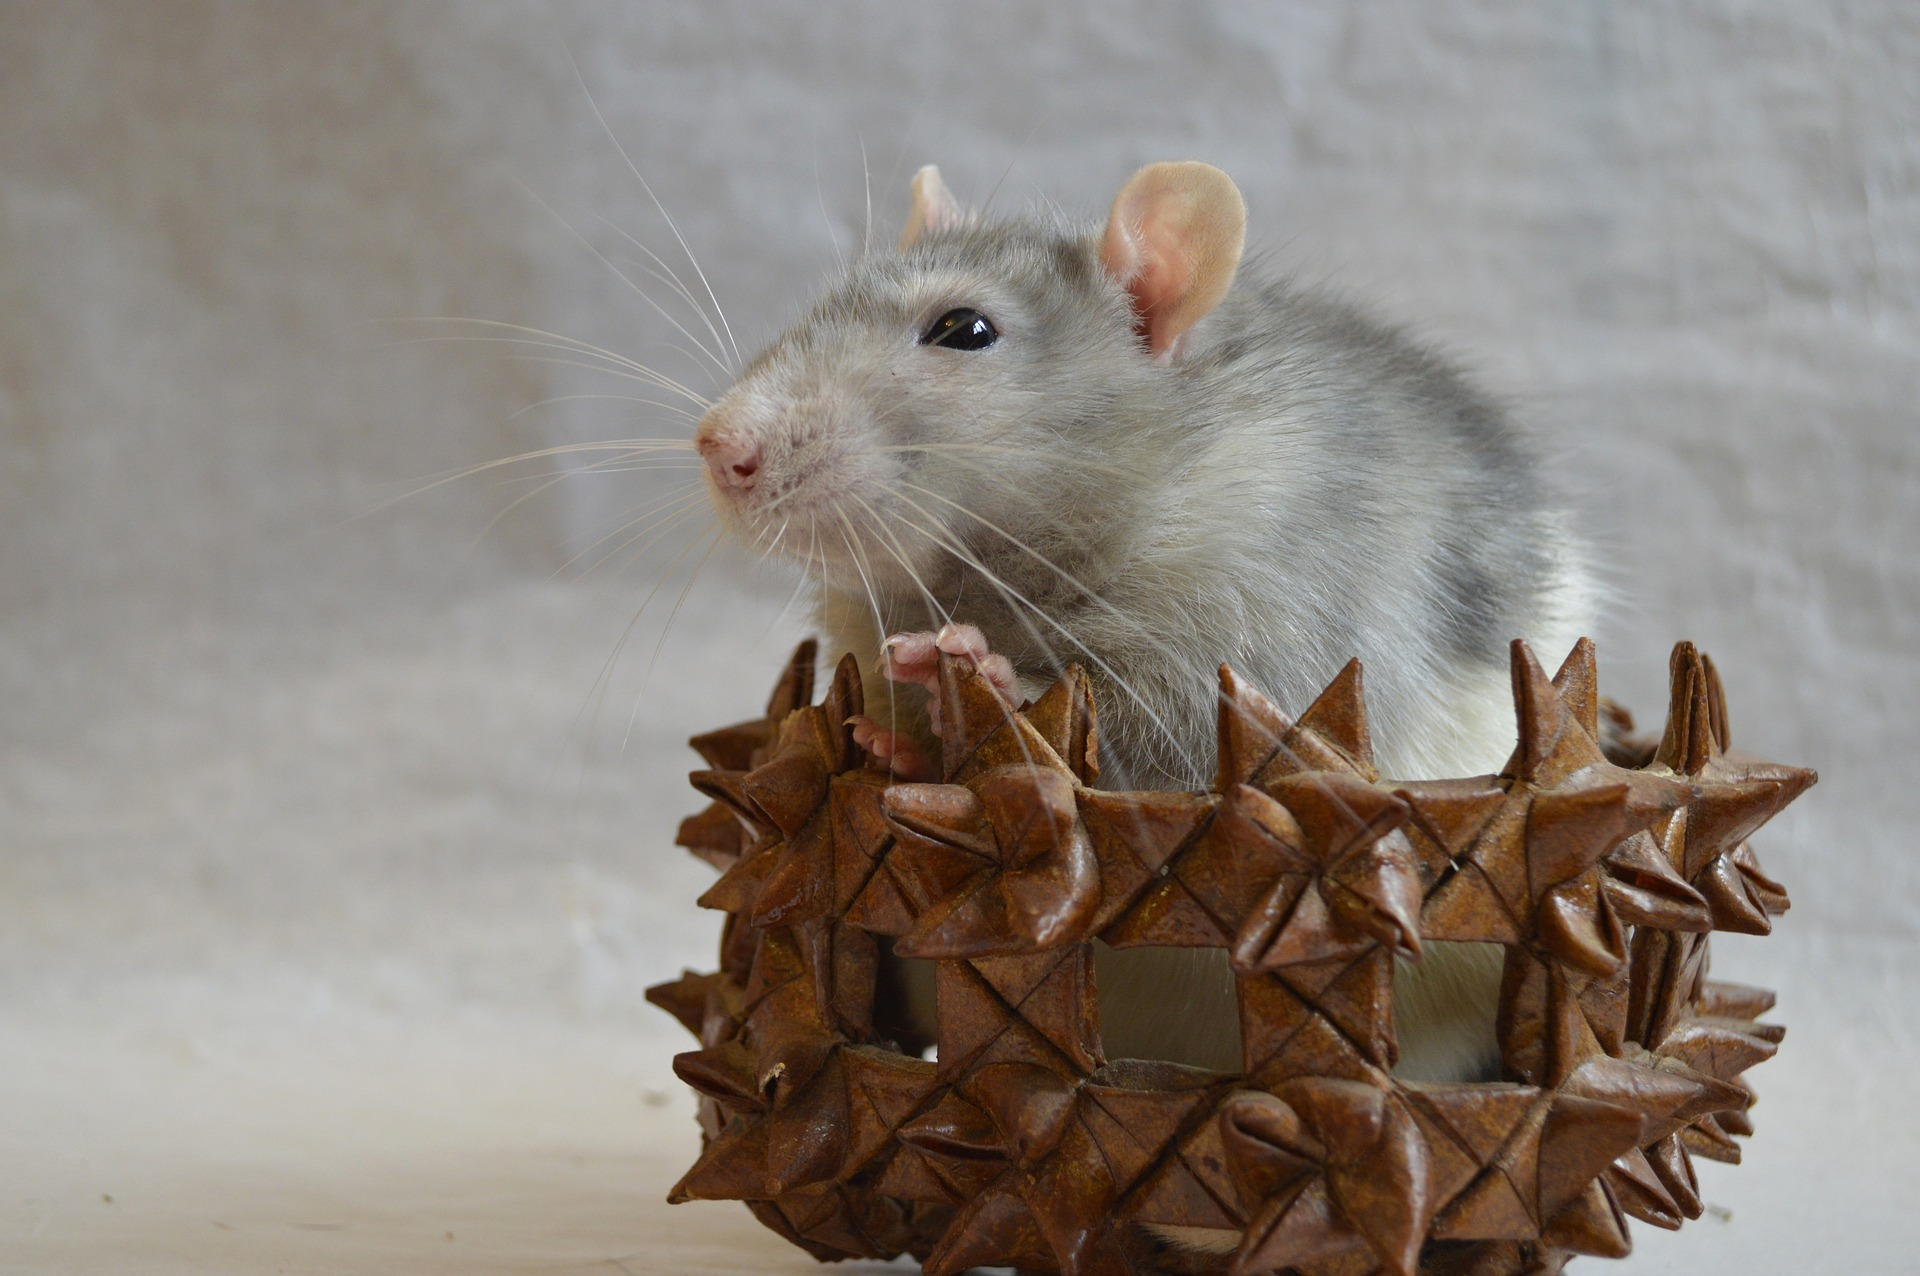 My Rat Has Lice or Mites: How Do I Get Rid of Them? (Mites